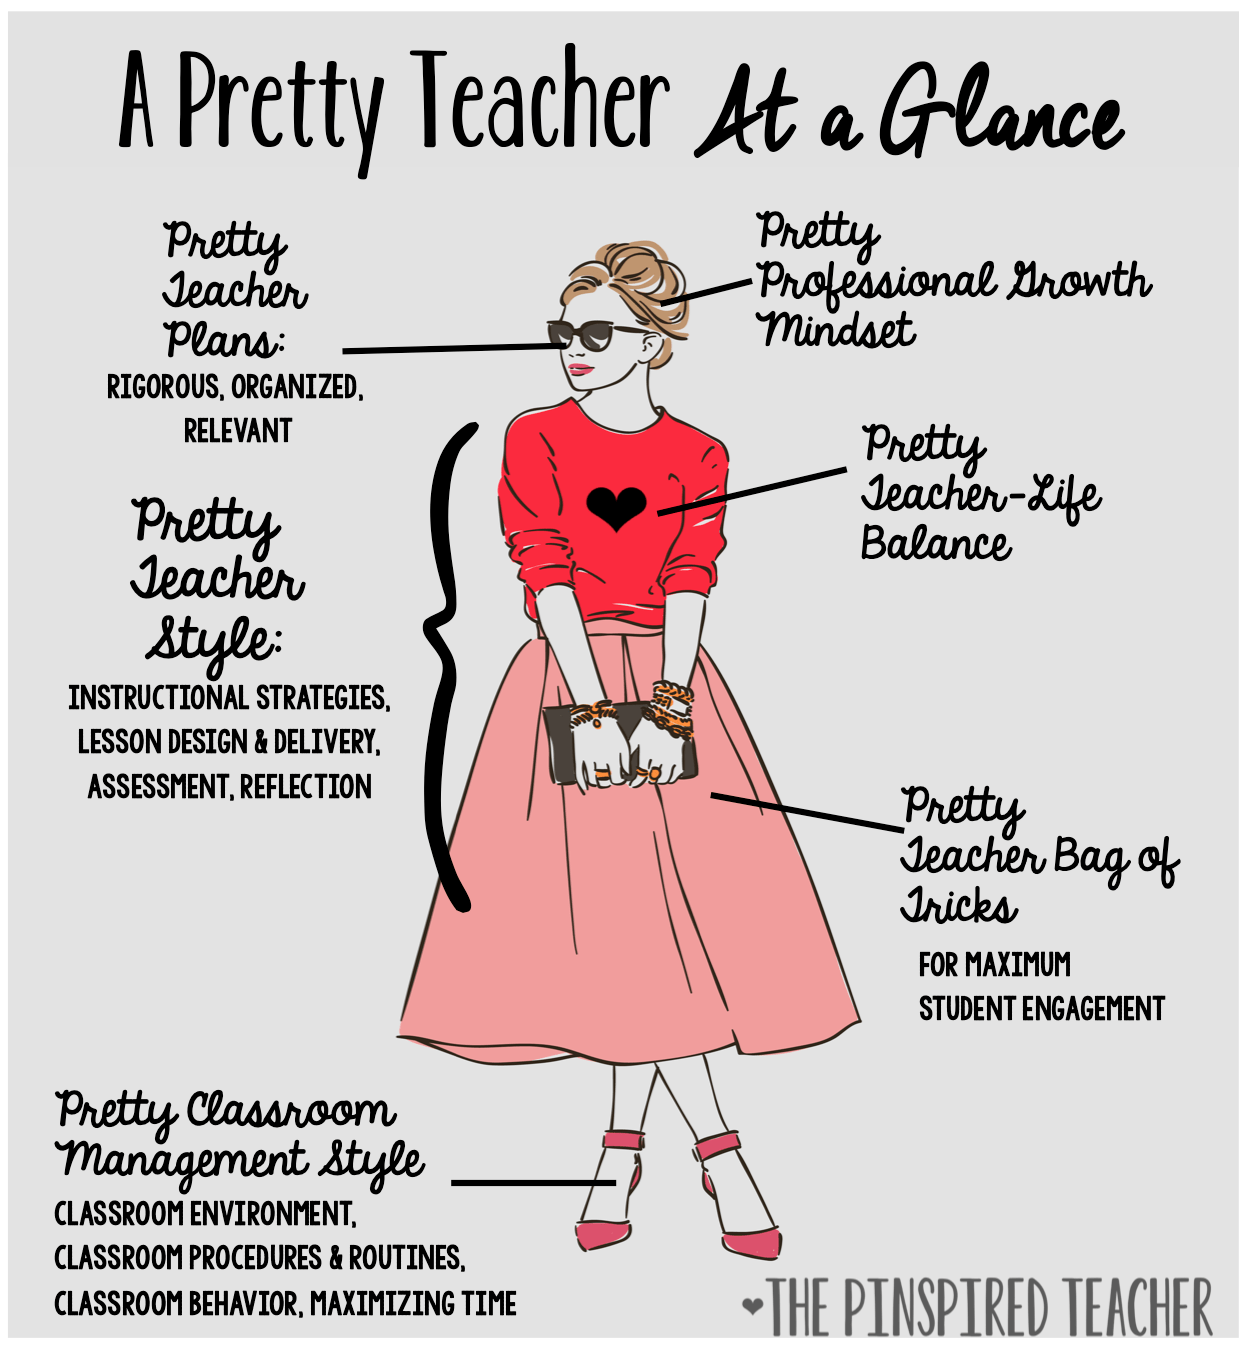 A Pretty Teacher At a Glance by The Pinspired Teacher